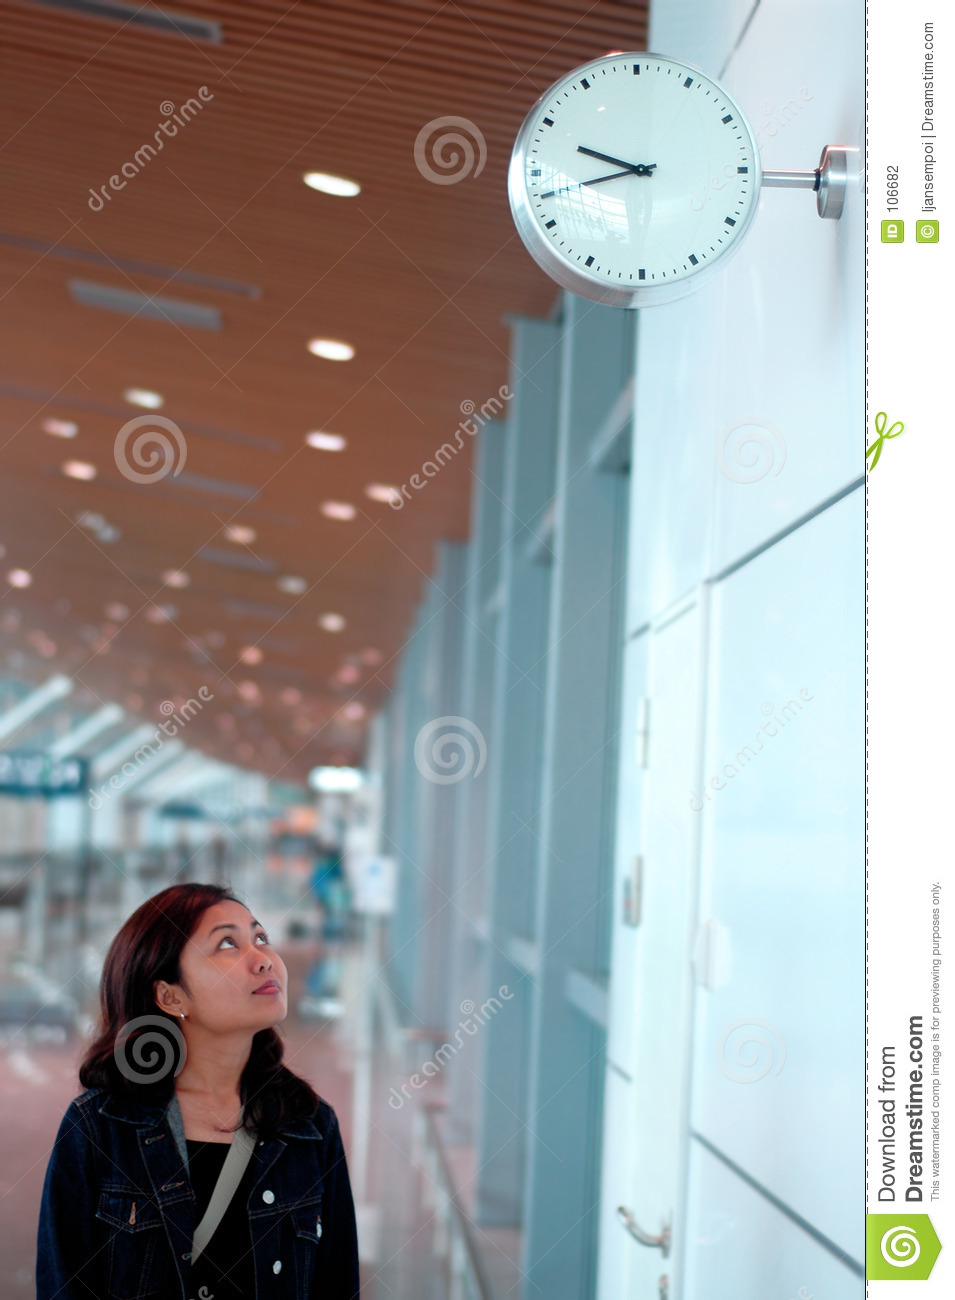 Download Looking at clock stock photo. Image of looking, airport - 106682